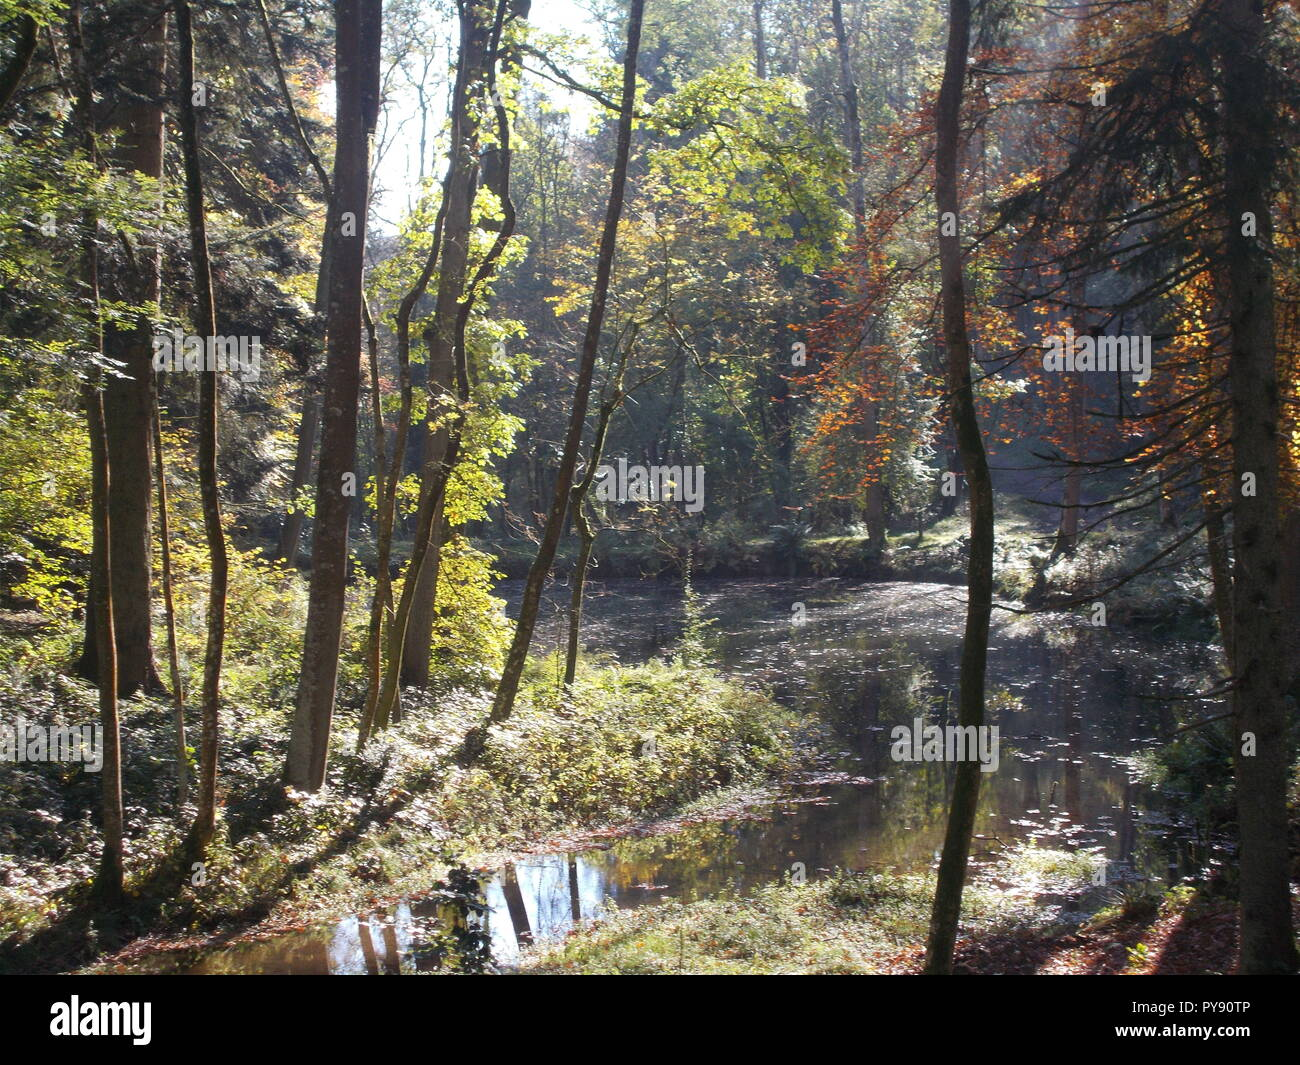 Autumn at Fish ponds Croft Castle October 2018 - Stock Image